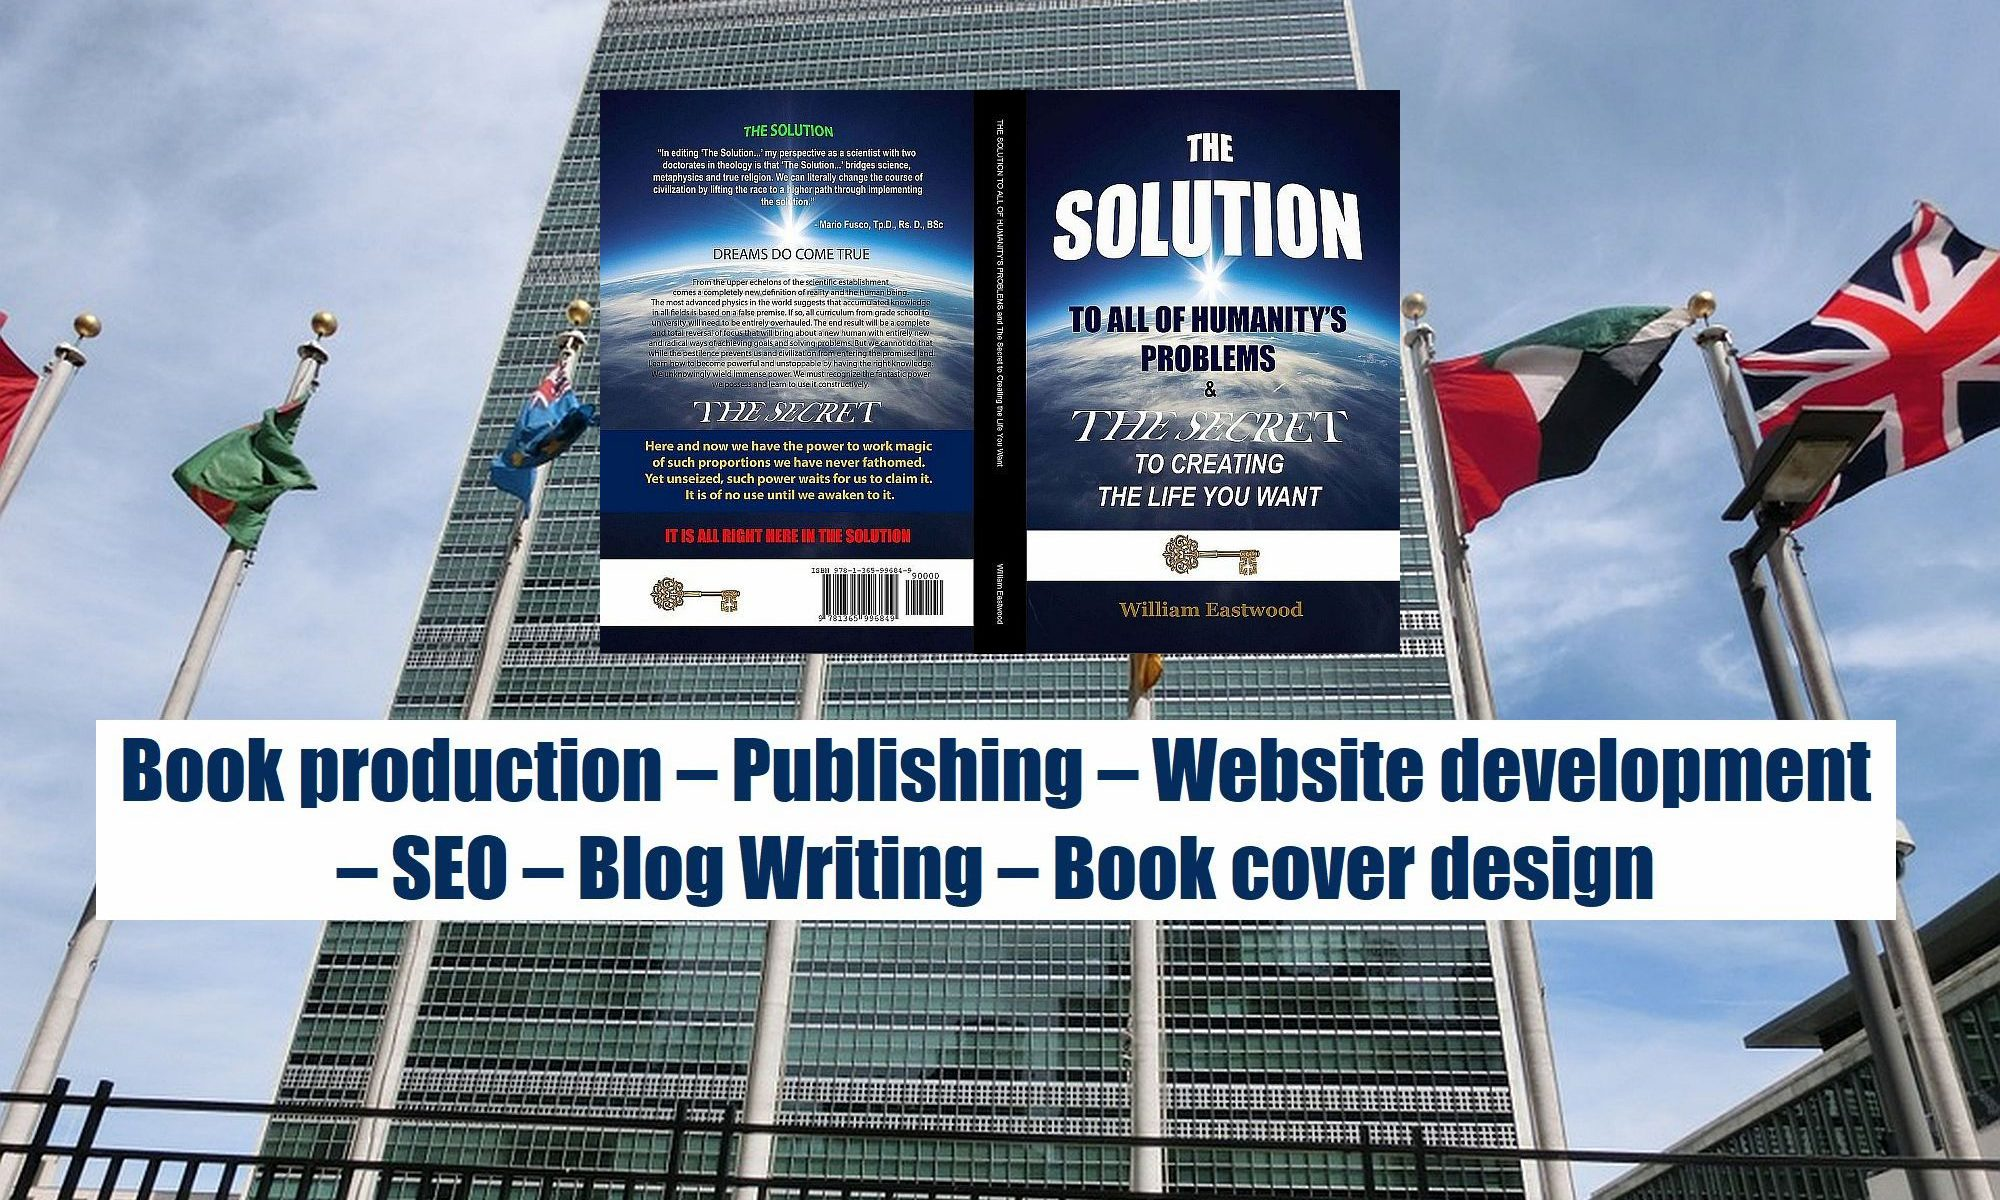 SEO-design-help-for-self-published-book-cover-development-2000